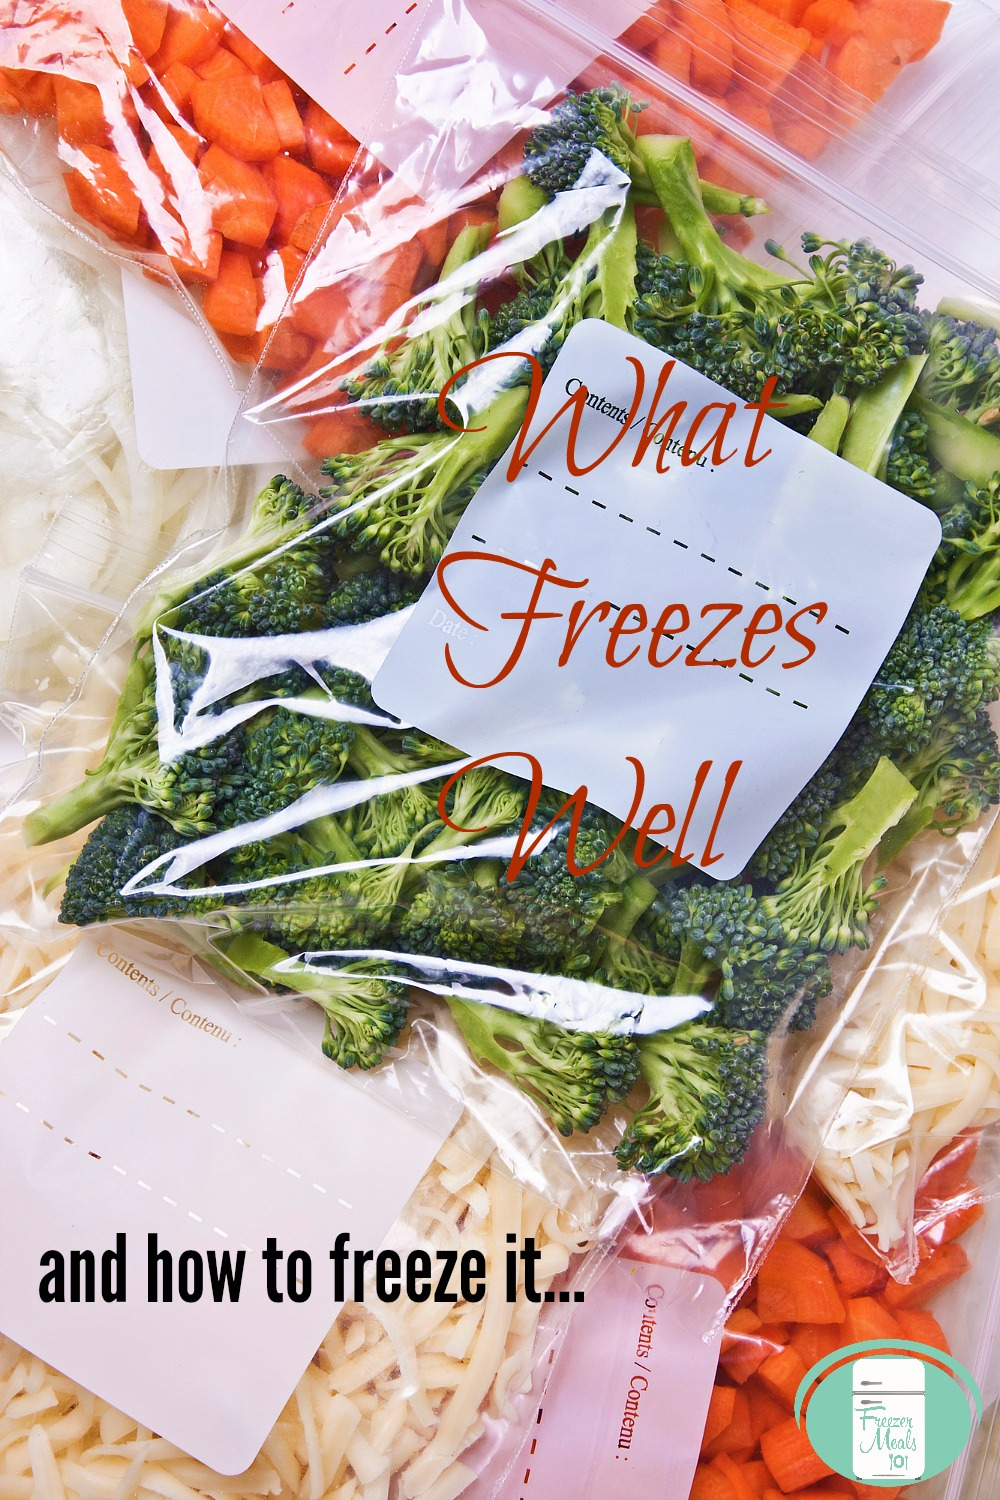 What freezes well and how to best freeze it